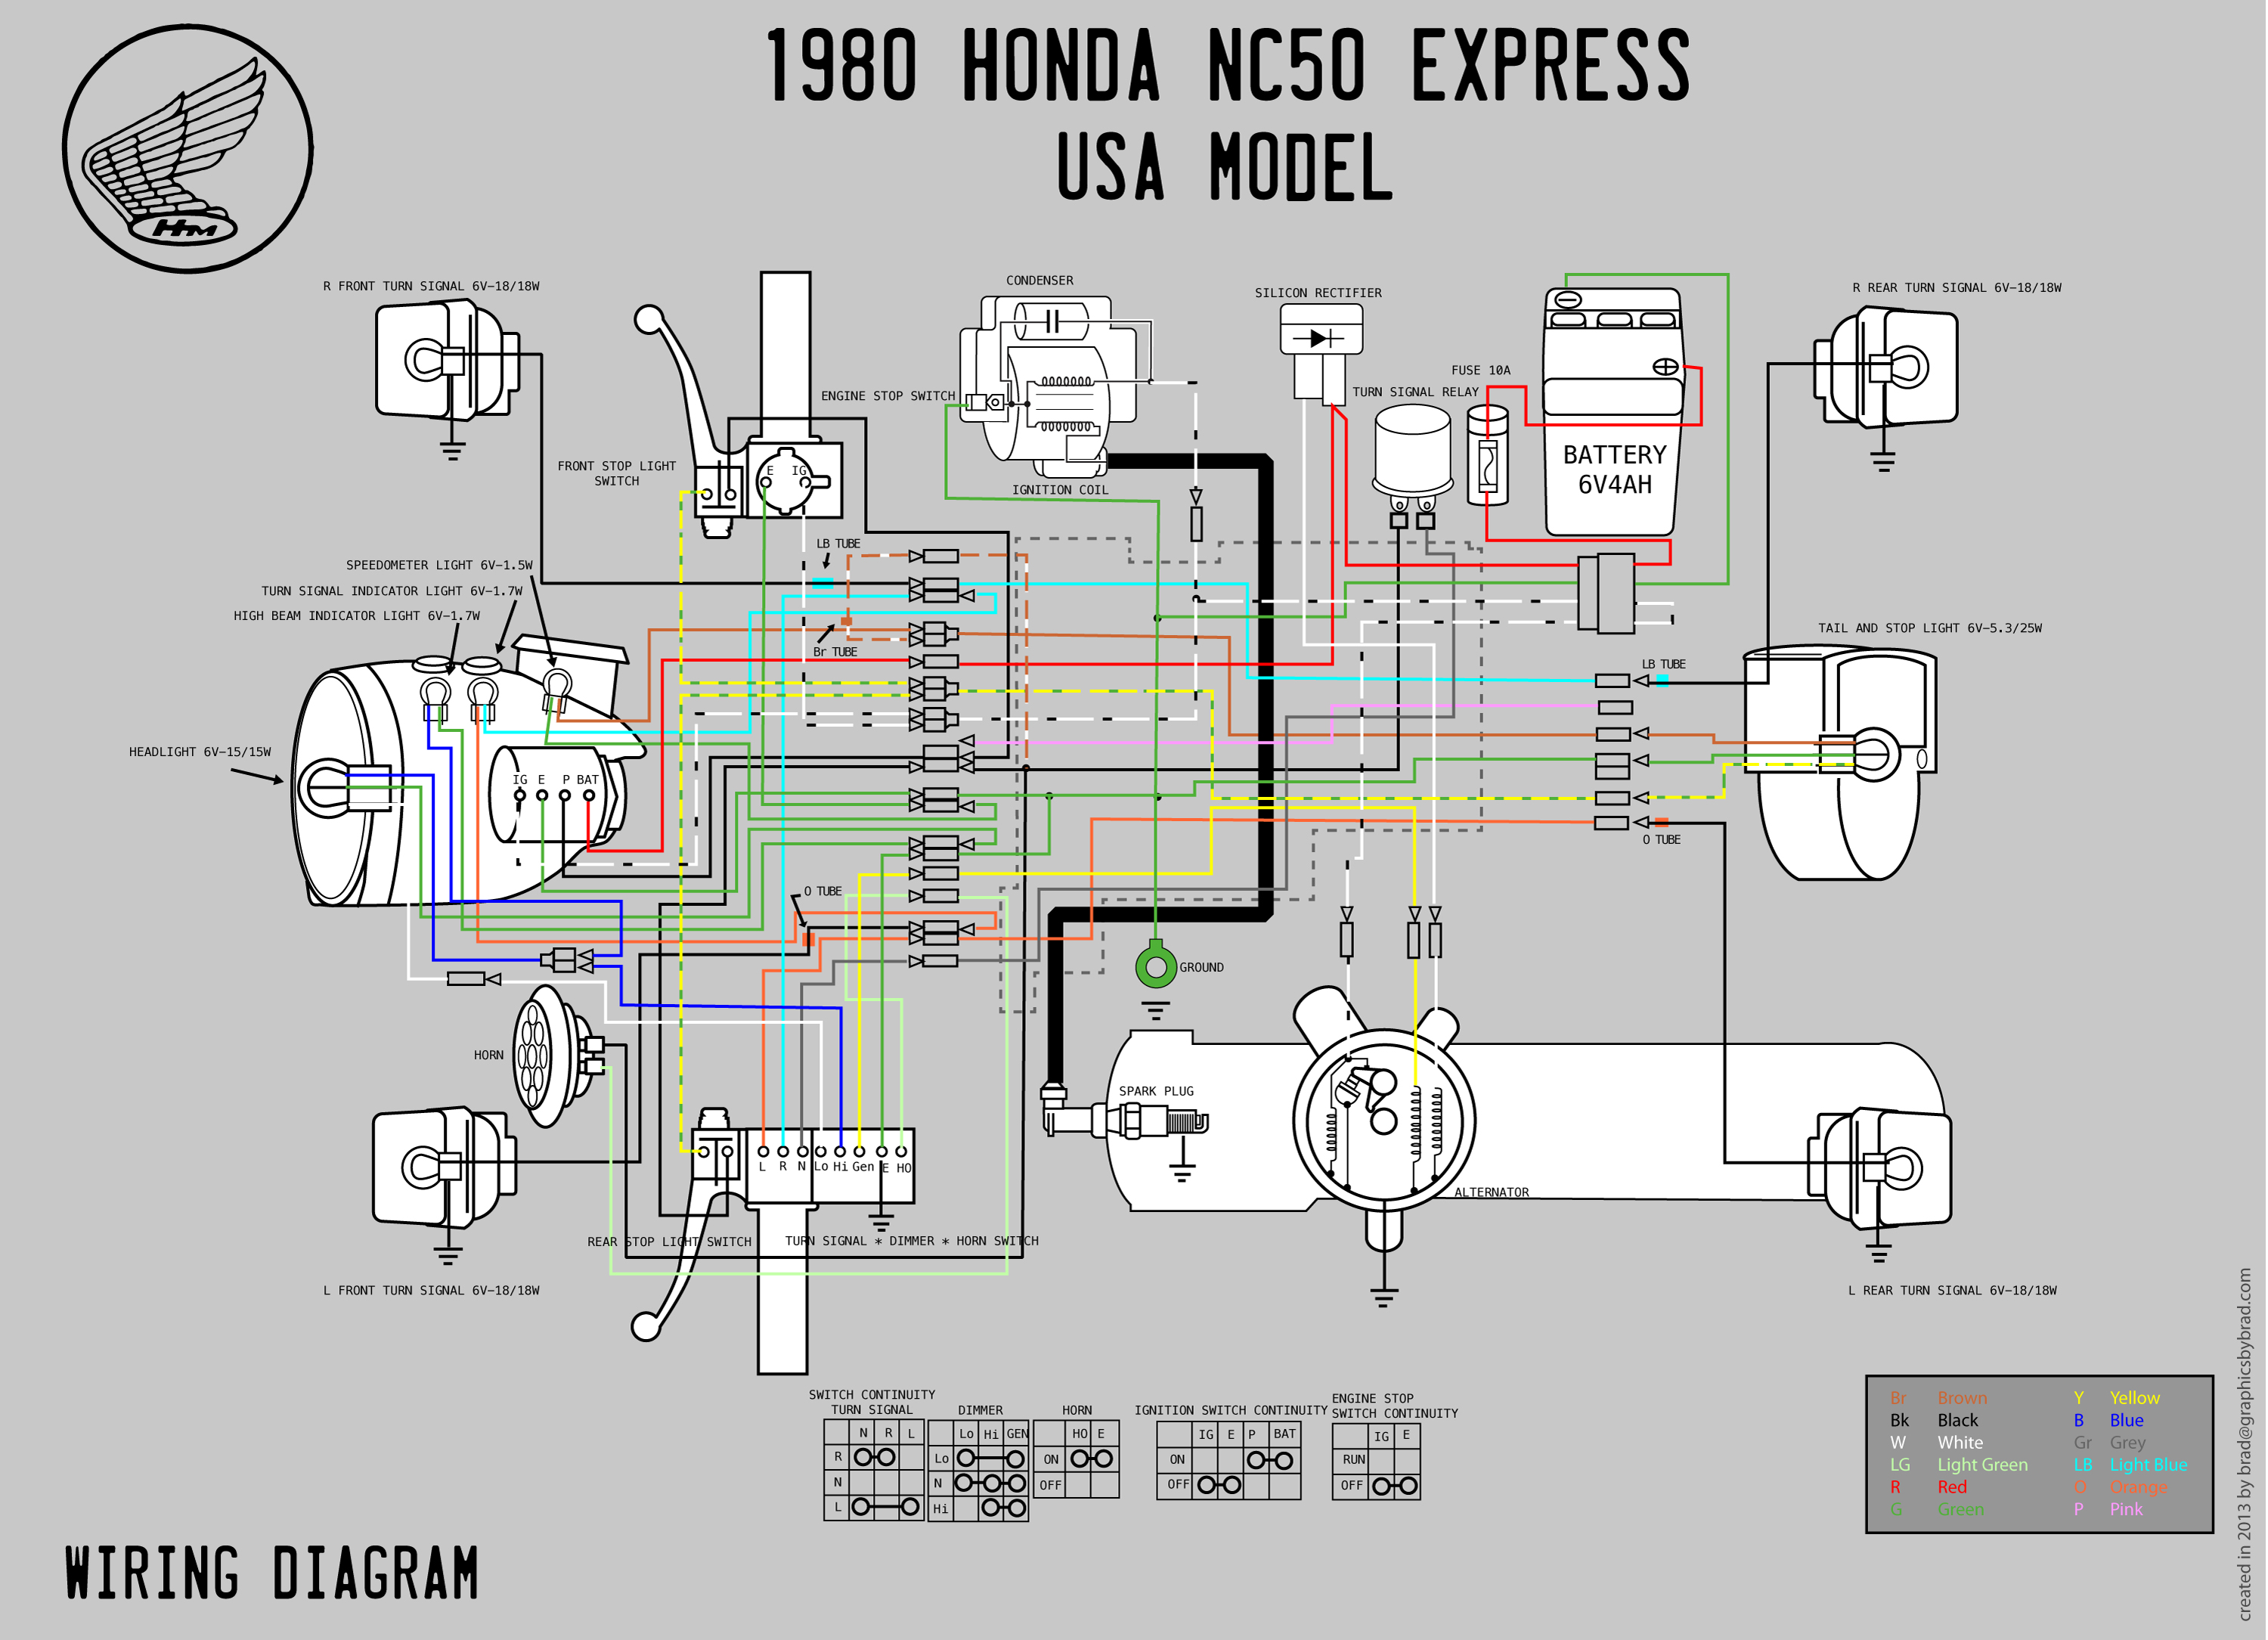 1980 nc50 wiring lrg 1980 honda express wiring diagram 1980 wiring diagrams collection tg1 express wiring diagram at suagrazia.org